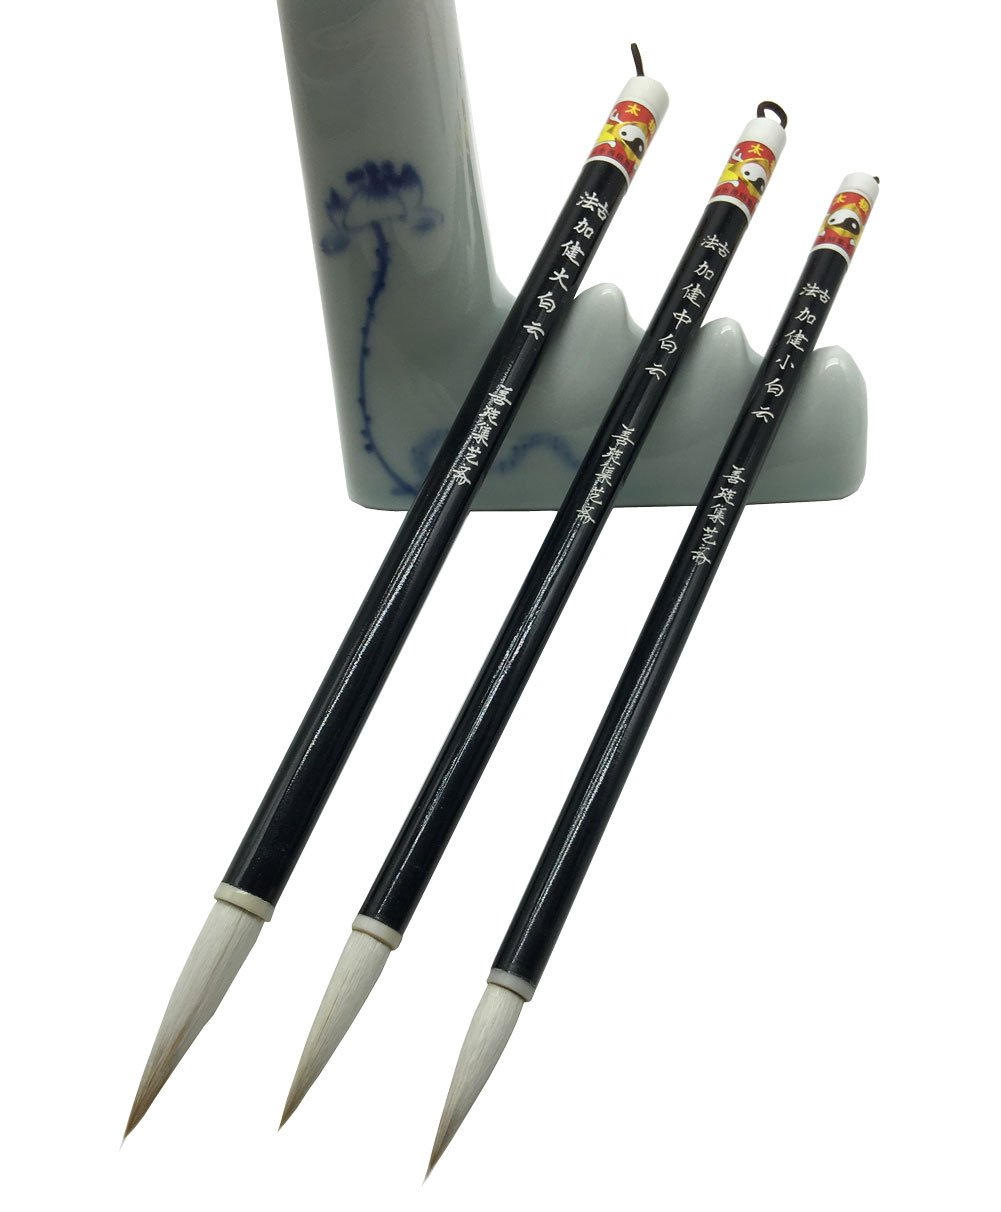 Easyou Hu Brush Chinese Brush for Coloring Painting and Practicing Calligraphy JJBY L+M+S 4336946319